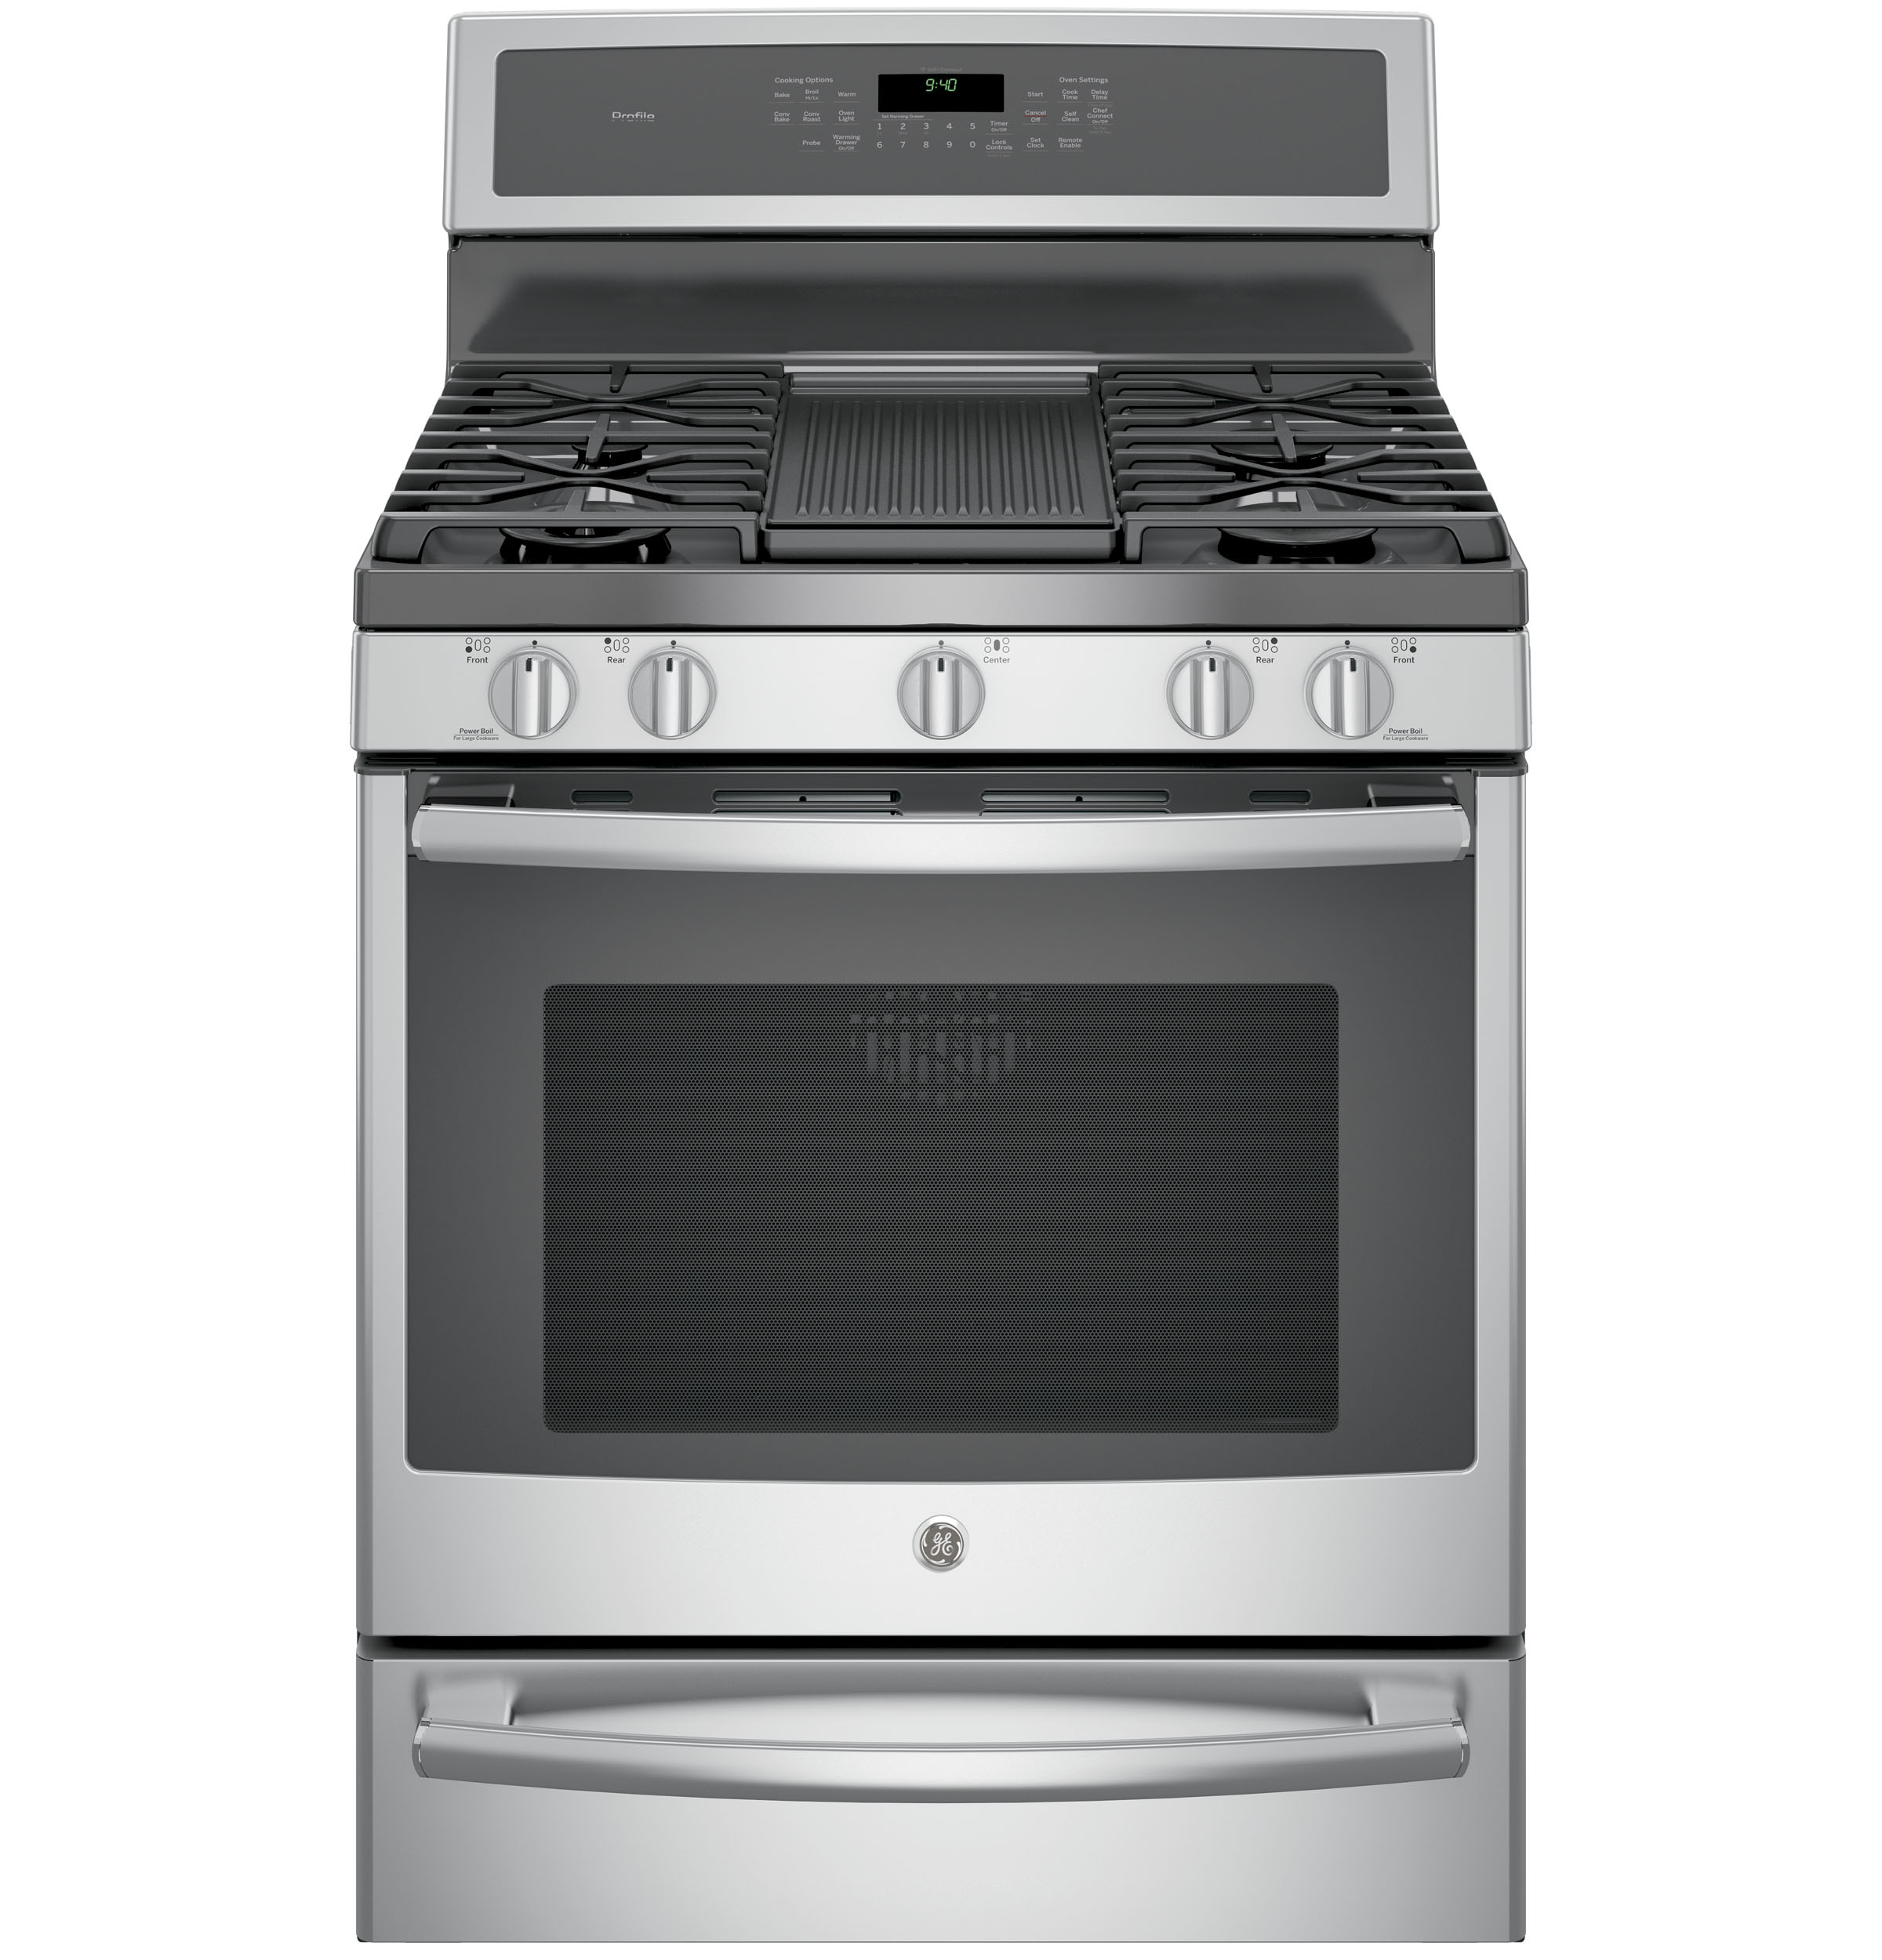 "Model: P2B940SEJSS | GE Profile GE Profile™ Series 30"" Dual-Fuel Free-Standing Convection Range with Warming Drawer"